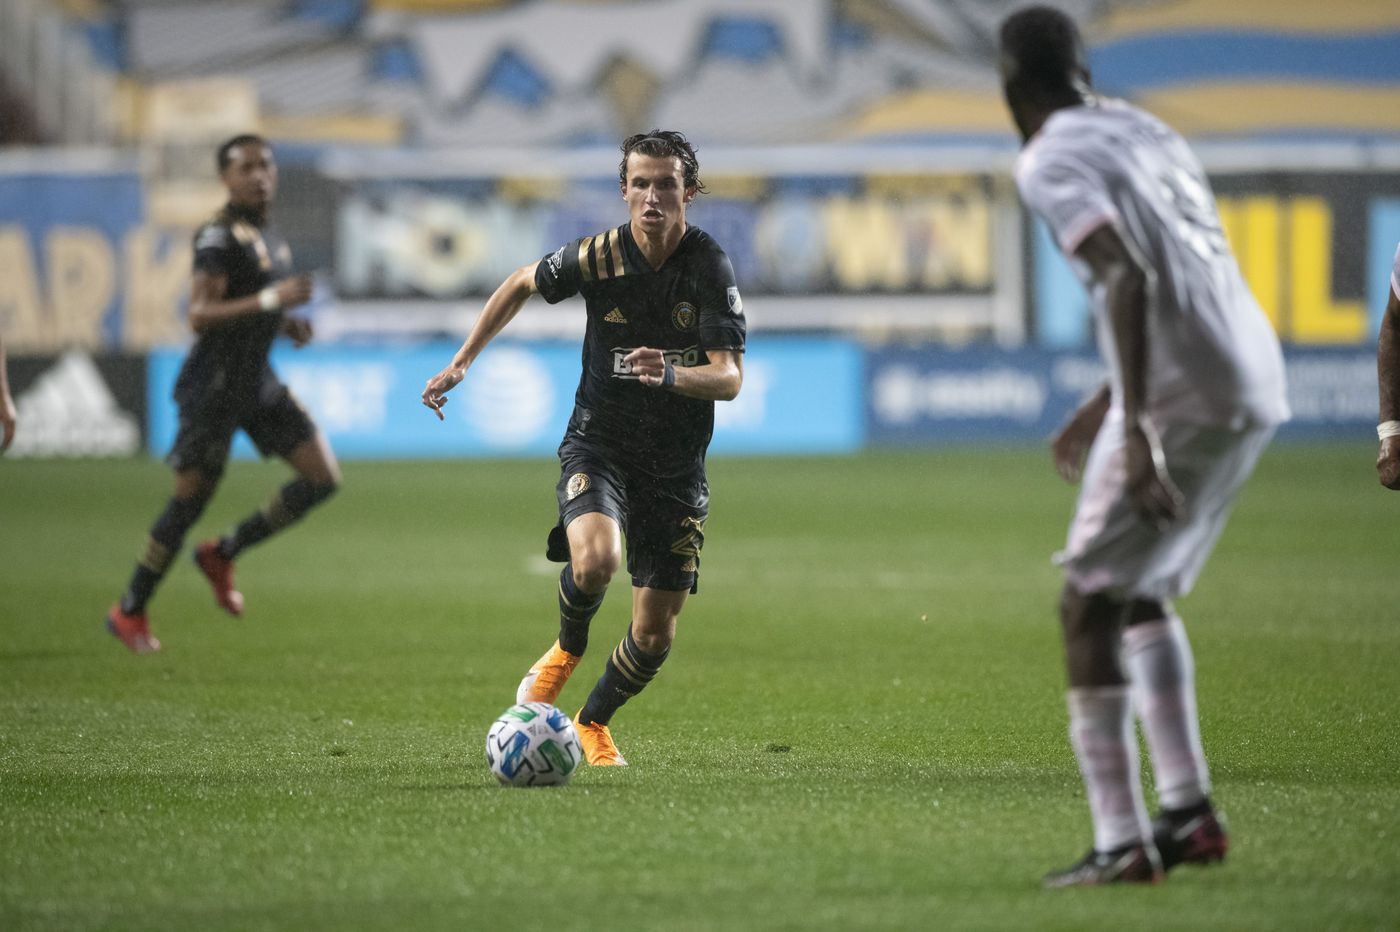 Union gets goals from Anthony Fontana, Ilsinho and Brenden Aaronson to defeat Miami, 3-0, in the rain